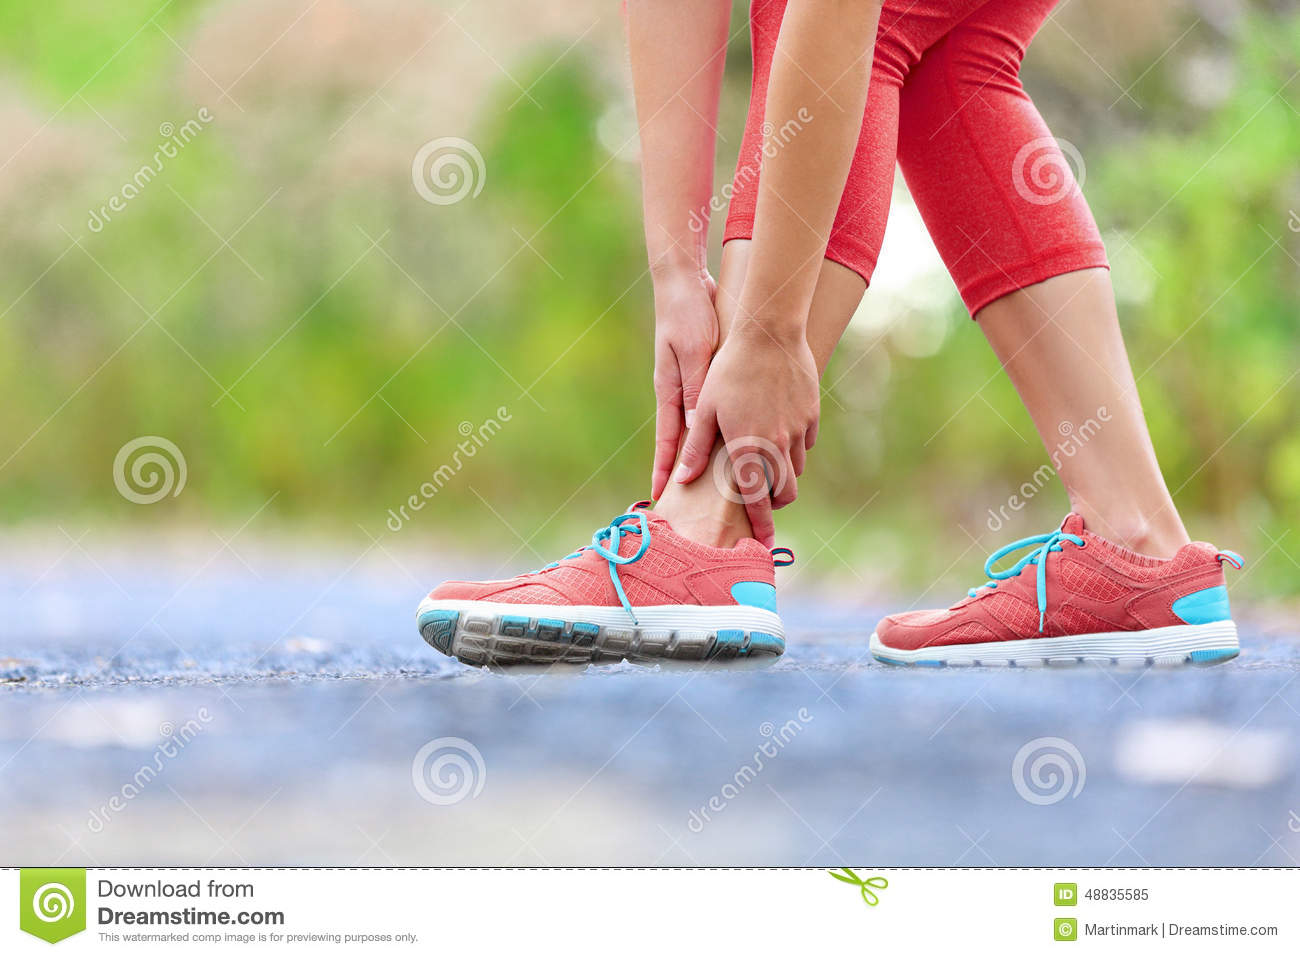 Twisted Broken Ankle Running Sport Injury Stock Photo